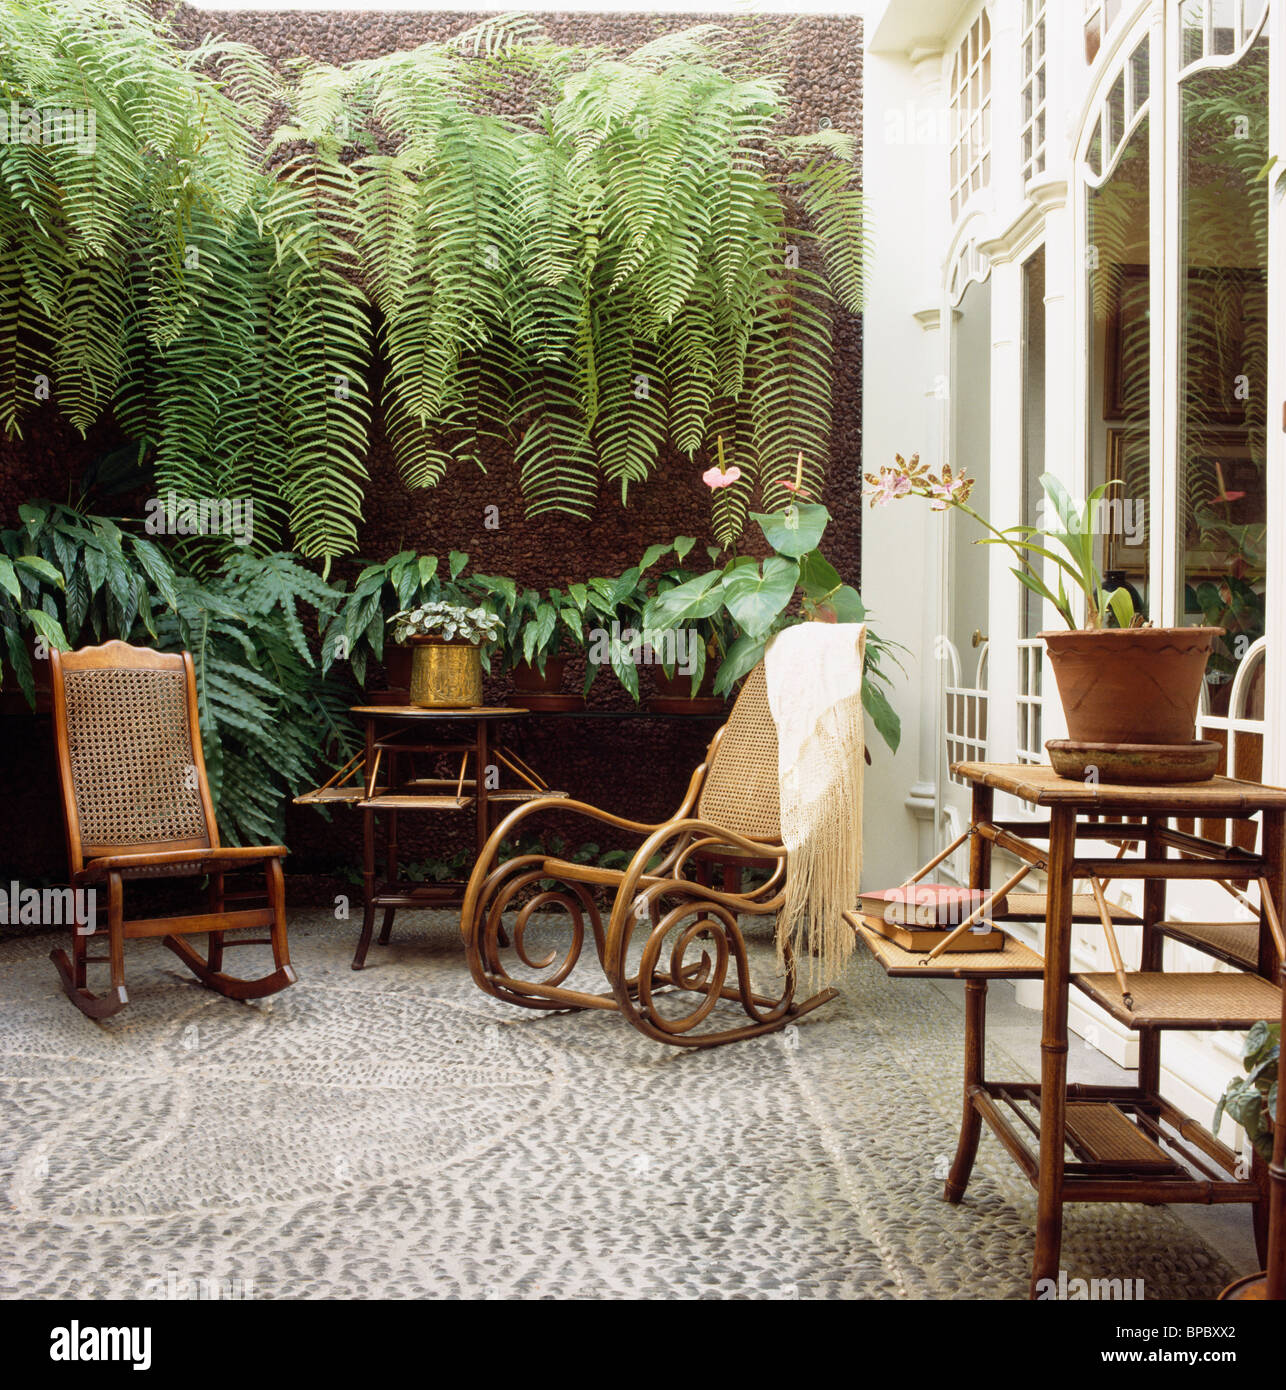 Antique Bentwood rocking chair and planter's chair on small townhouse  courtyard with pebble mosaic paving and - Bentwood Rocking Chair Stock Photos & Bentwood Rocking Chair Stock